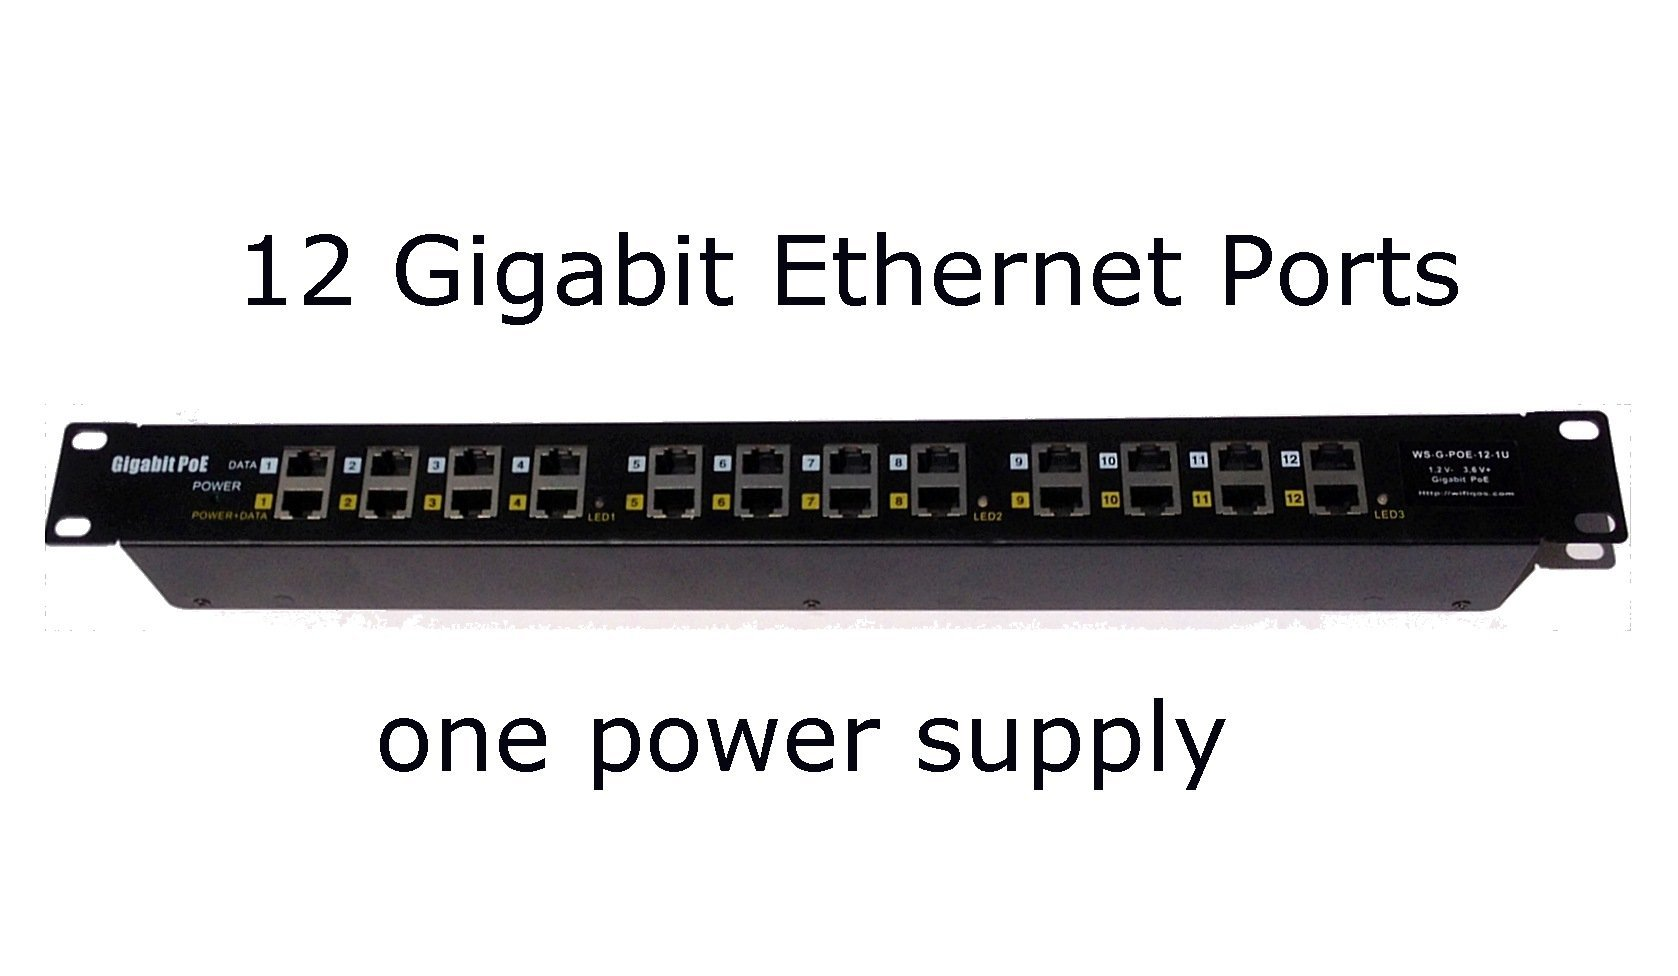 WS-GPOE-12-1U - 12 Port Gigabit Passive Midspan Poe injector - Mode A and B - Power Supply NOT Included